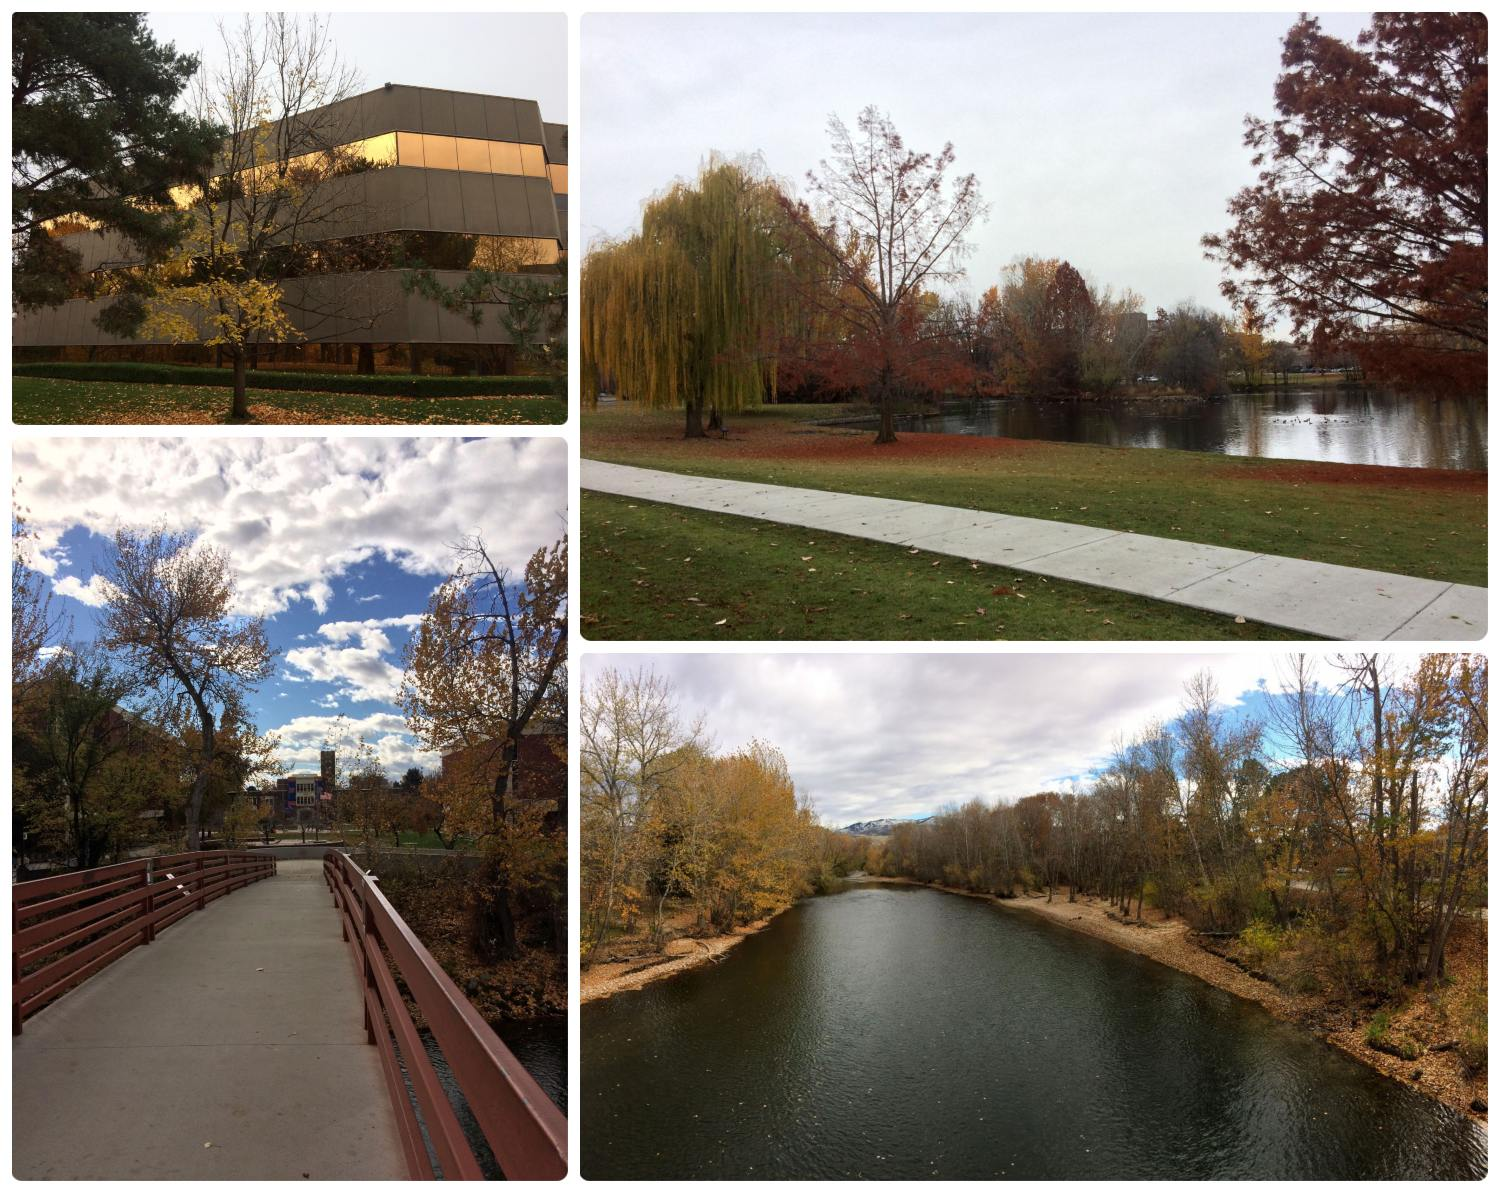 The scenery in and around downtown Boise, Idaho. (The Green Belt, Julia Davis Park, the Boise River, and Boise State University.)